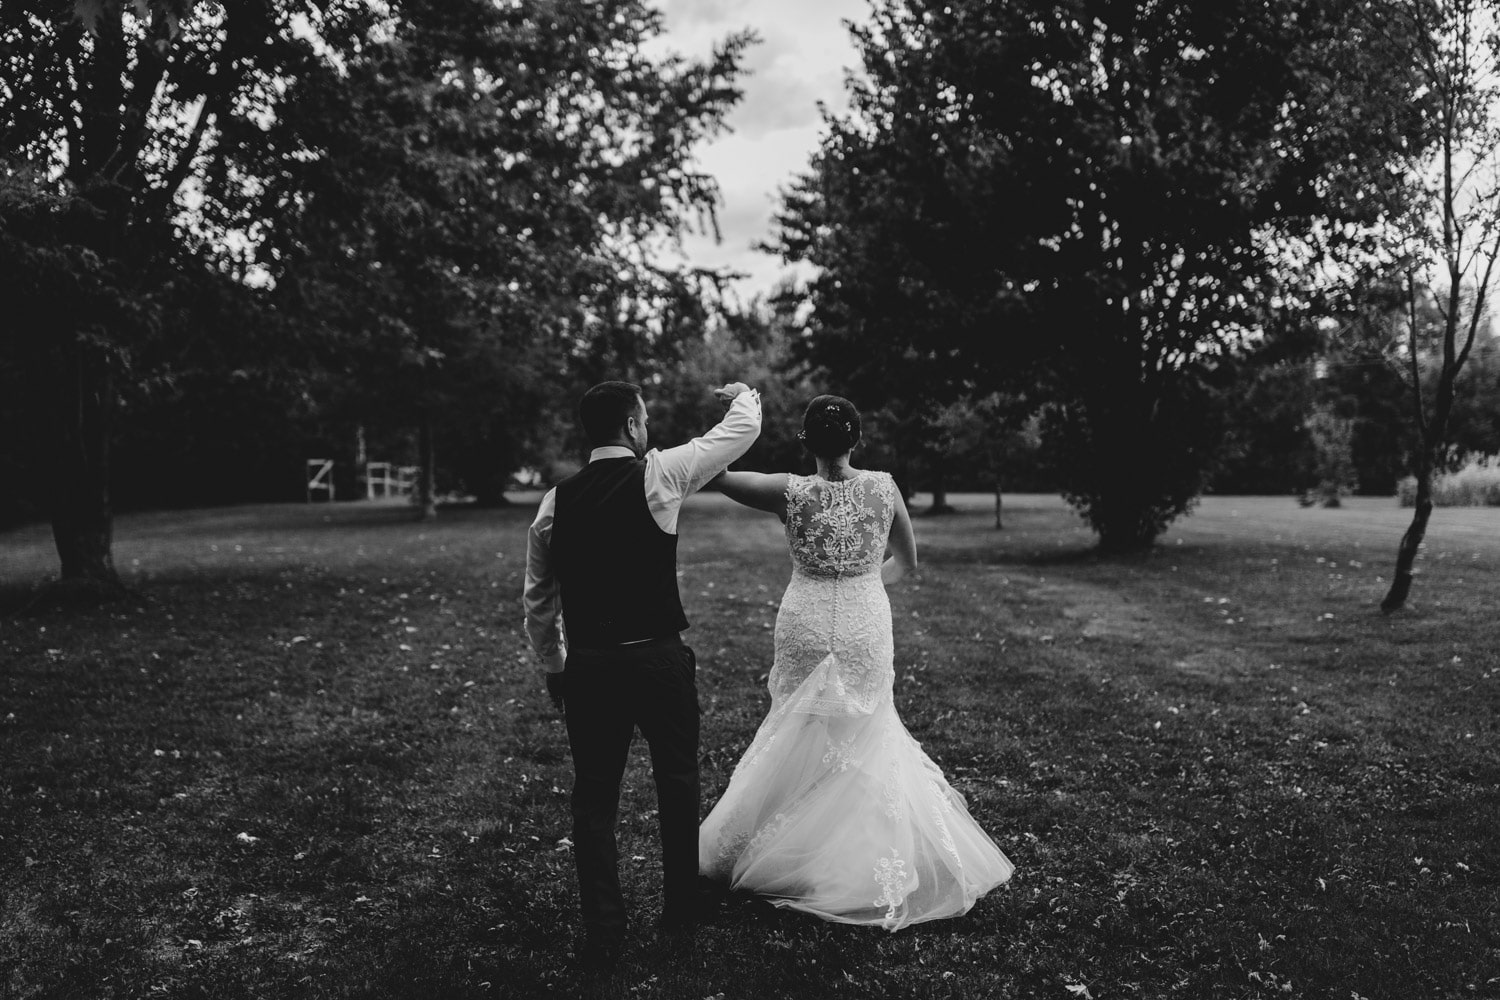 bride and groom dance together outside